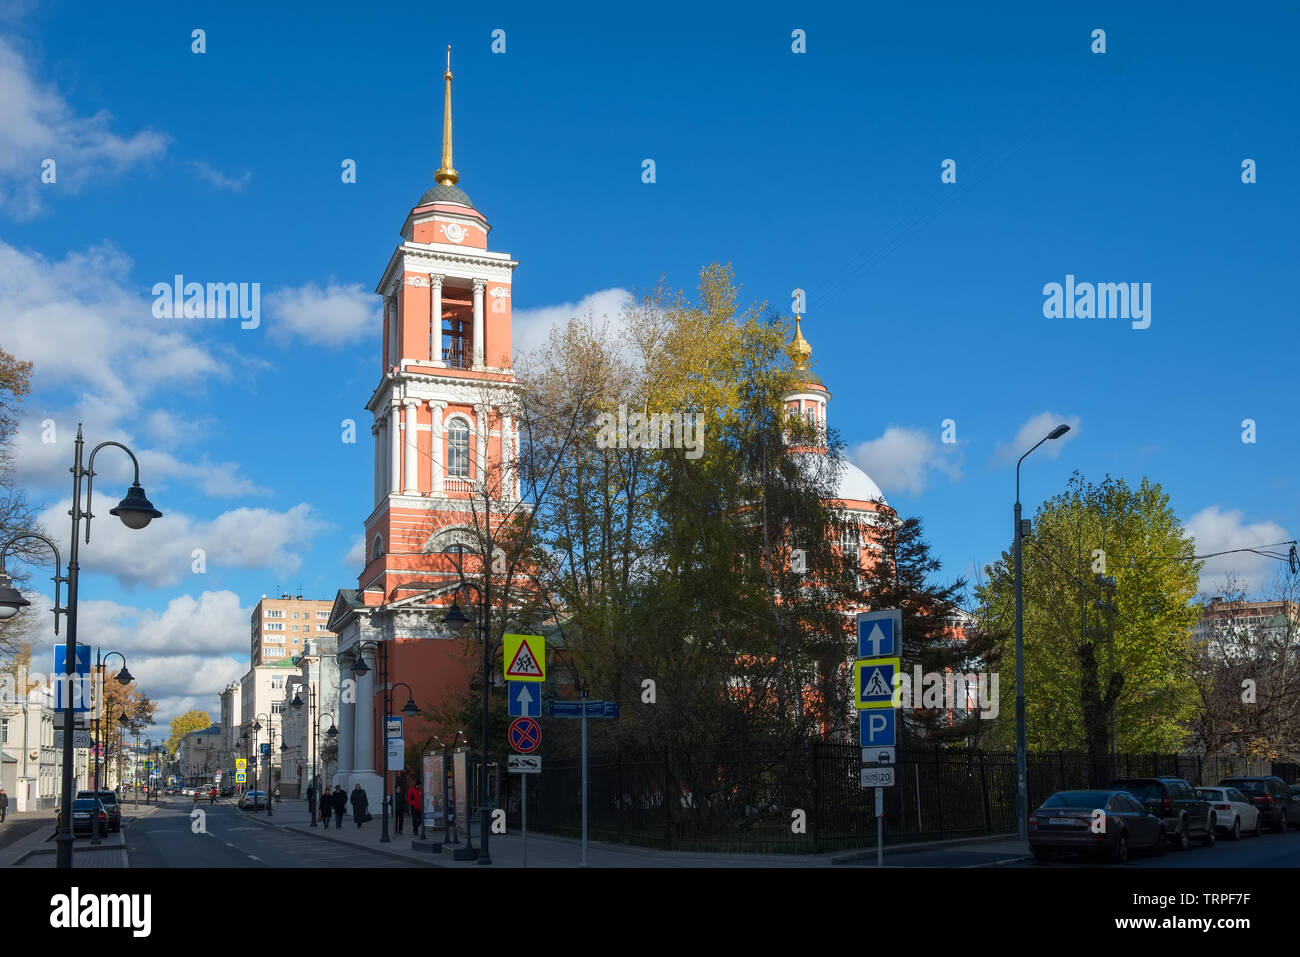 MOSCOW - OCTOBER 27, 2018: Temple of the Trinity. View of the street Pyatnitskaya street in the city center on an autumn morning - Stock Image